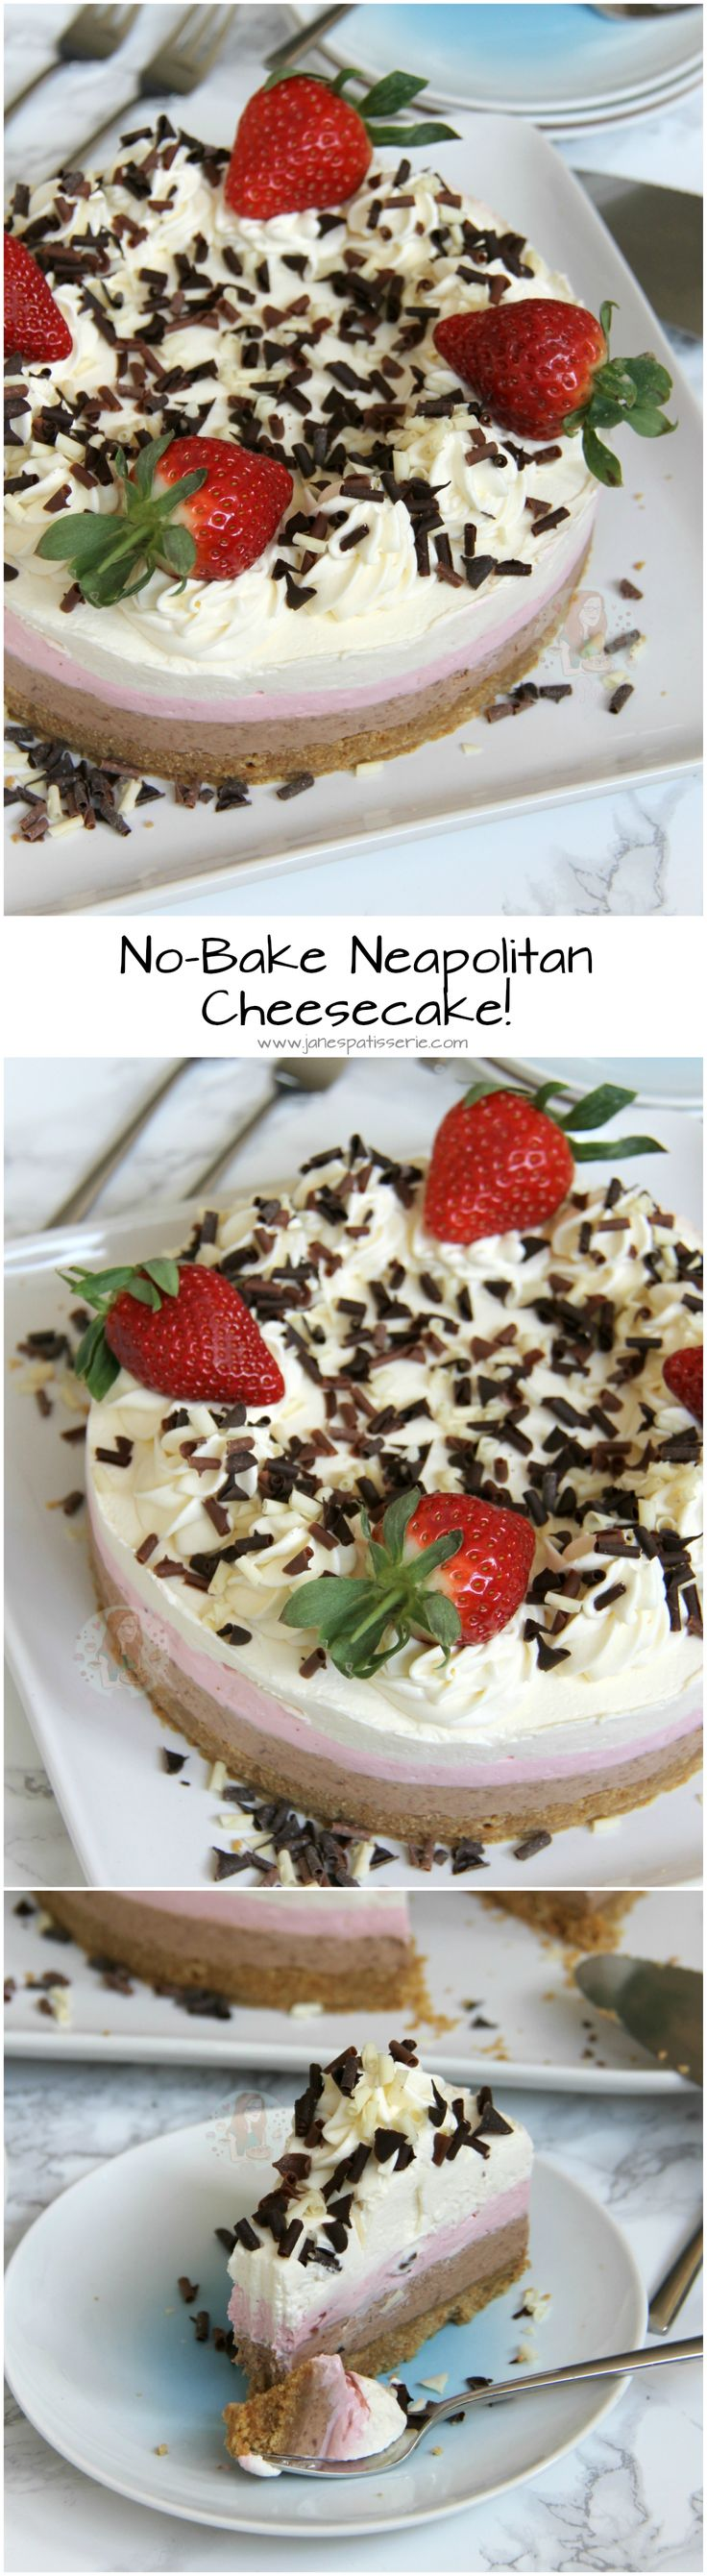 No Bake Neapolitan Cheesecake A Buttery Biscuit Base Chocolate Layer